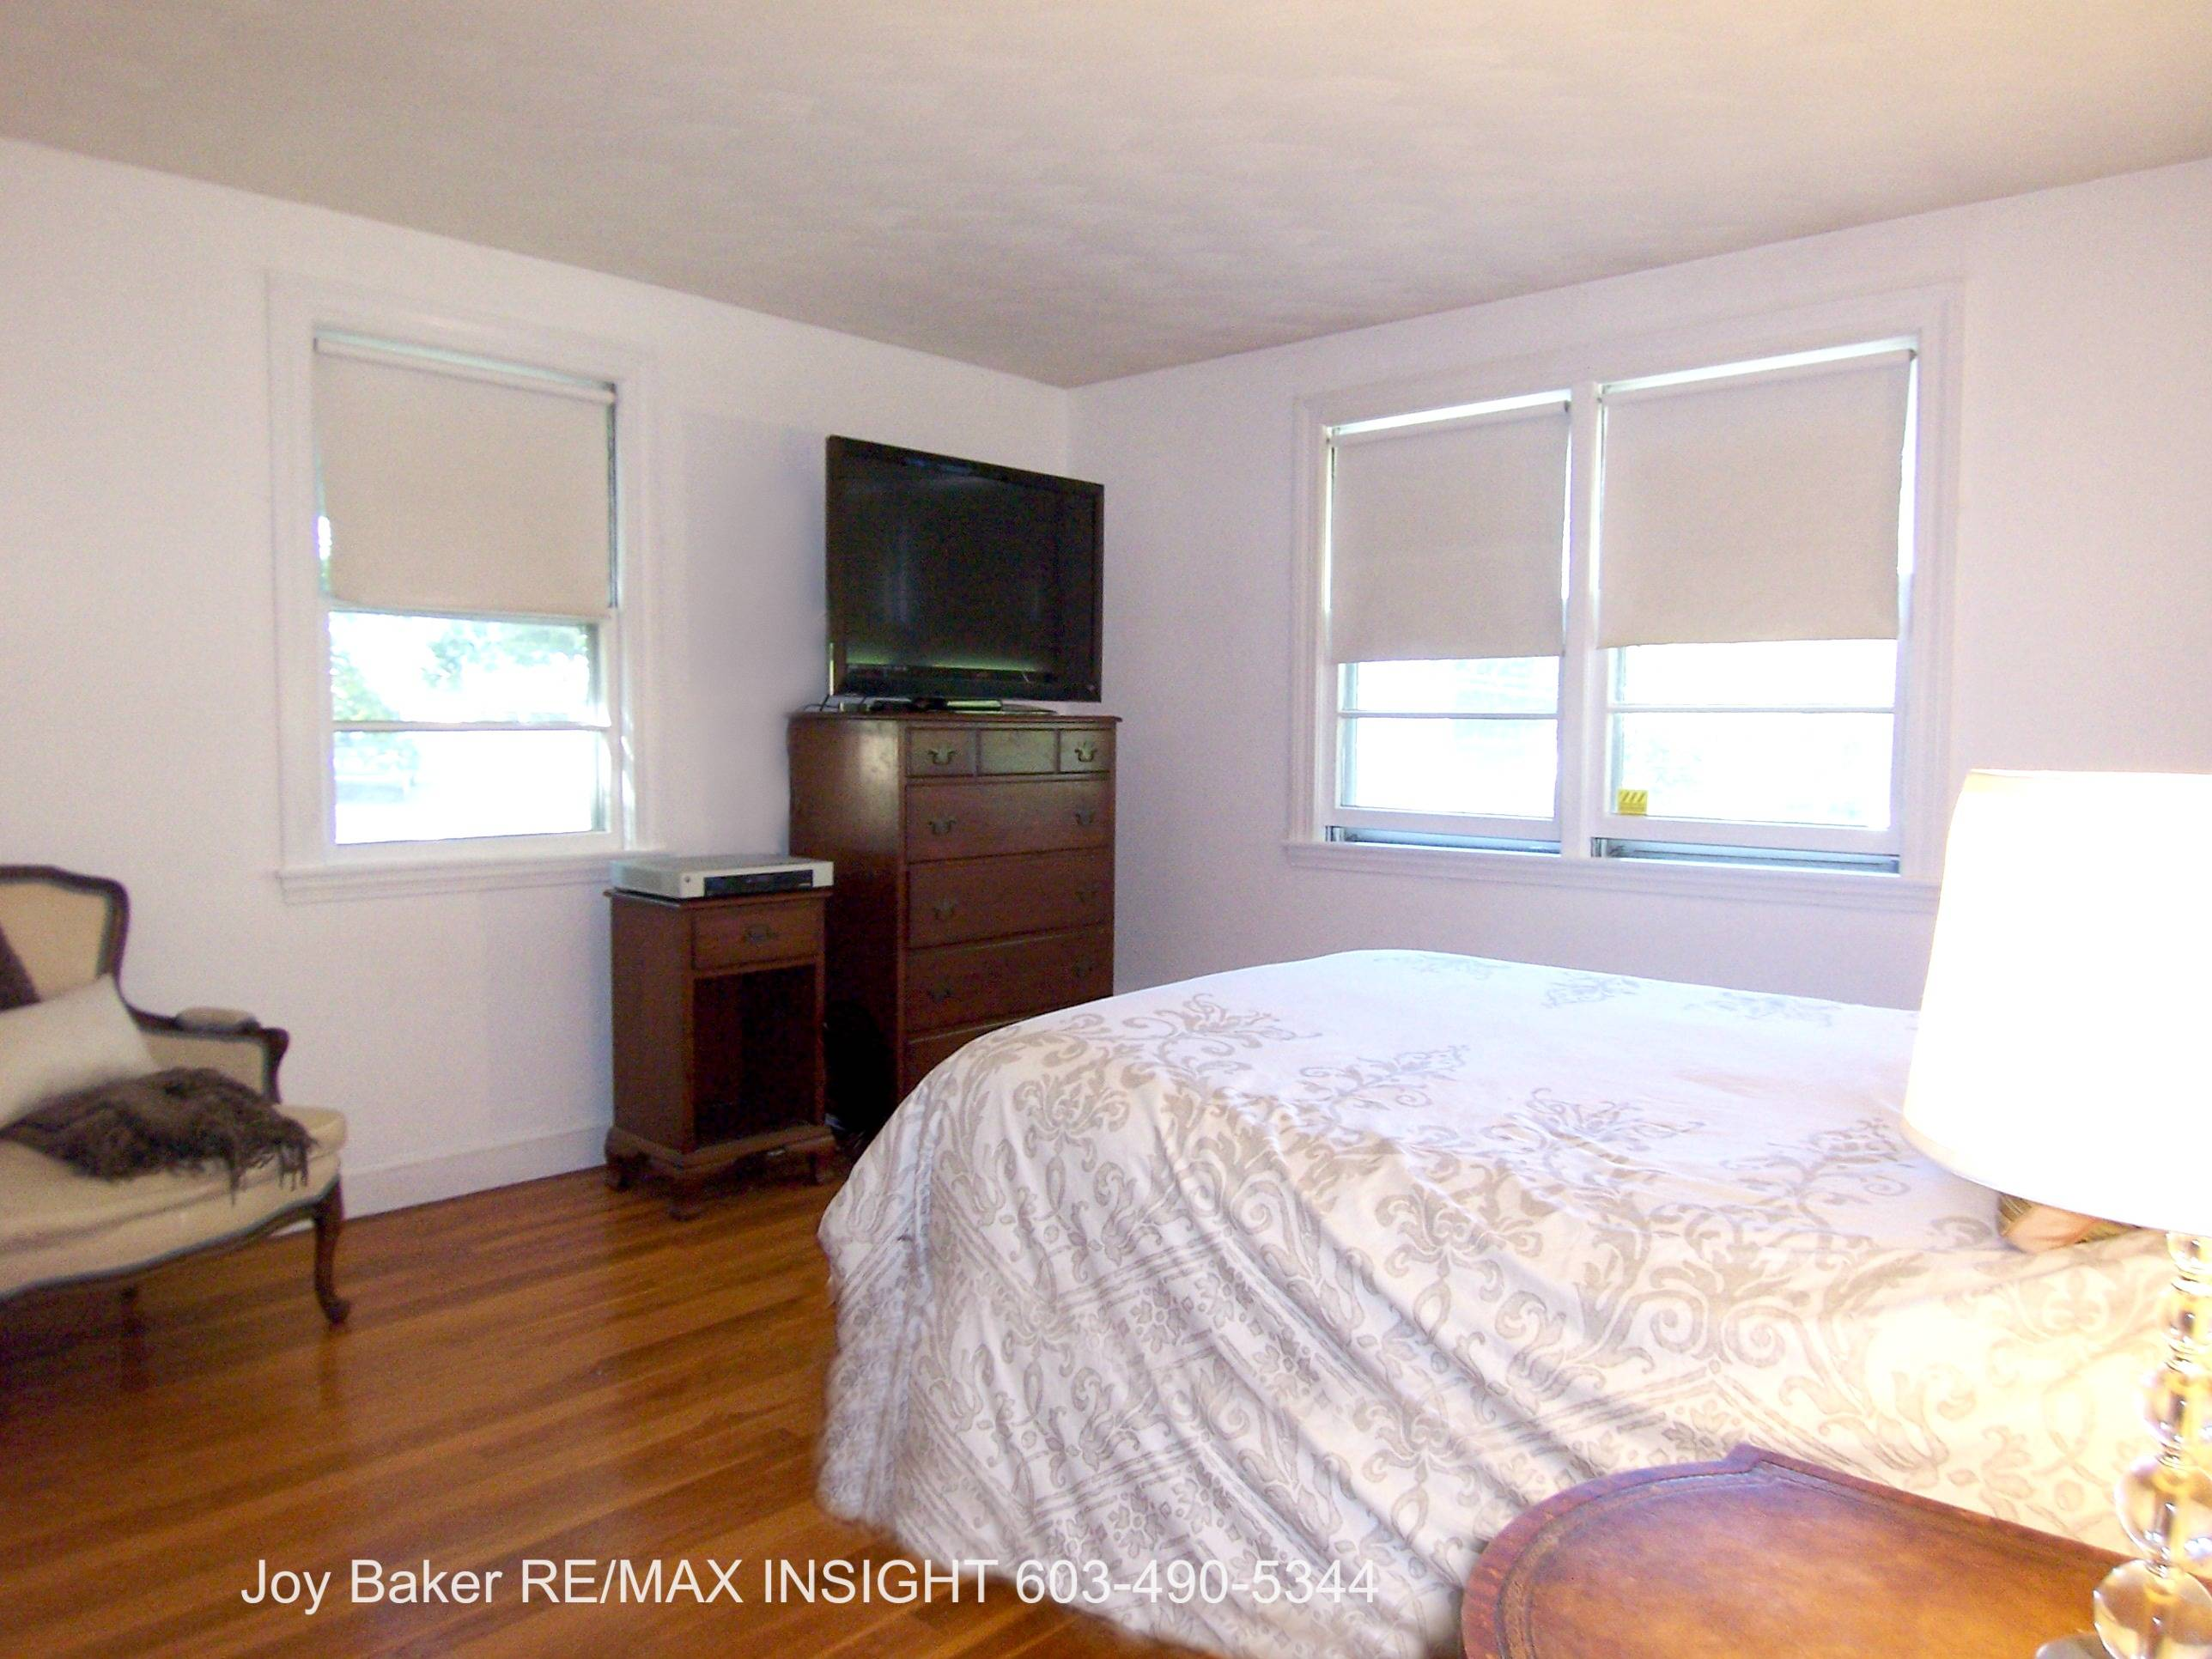 the upper bedroom level offers three generously sized bedrooms and the